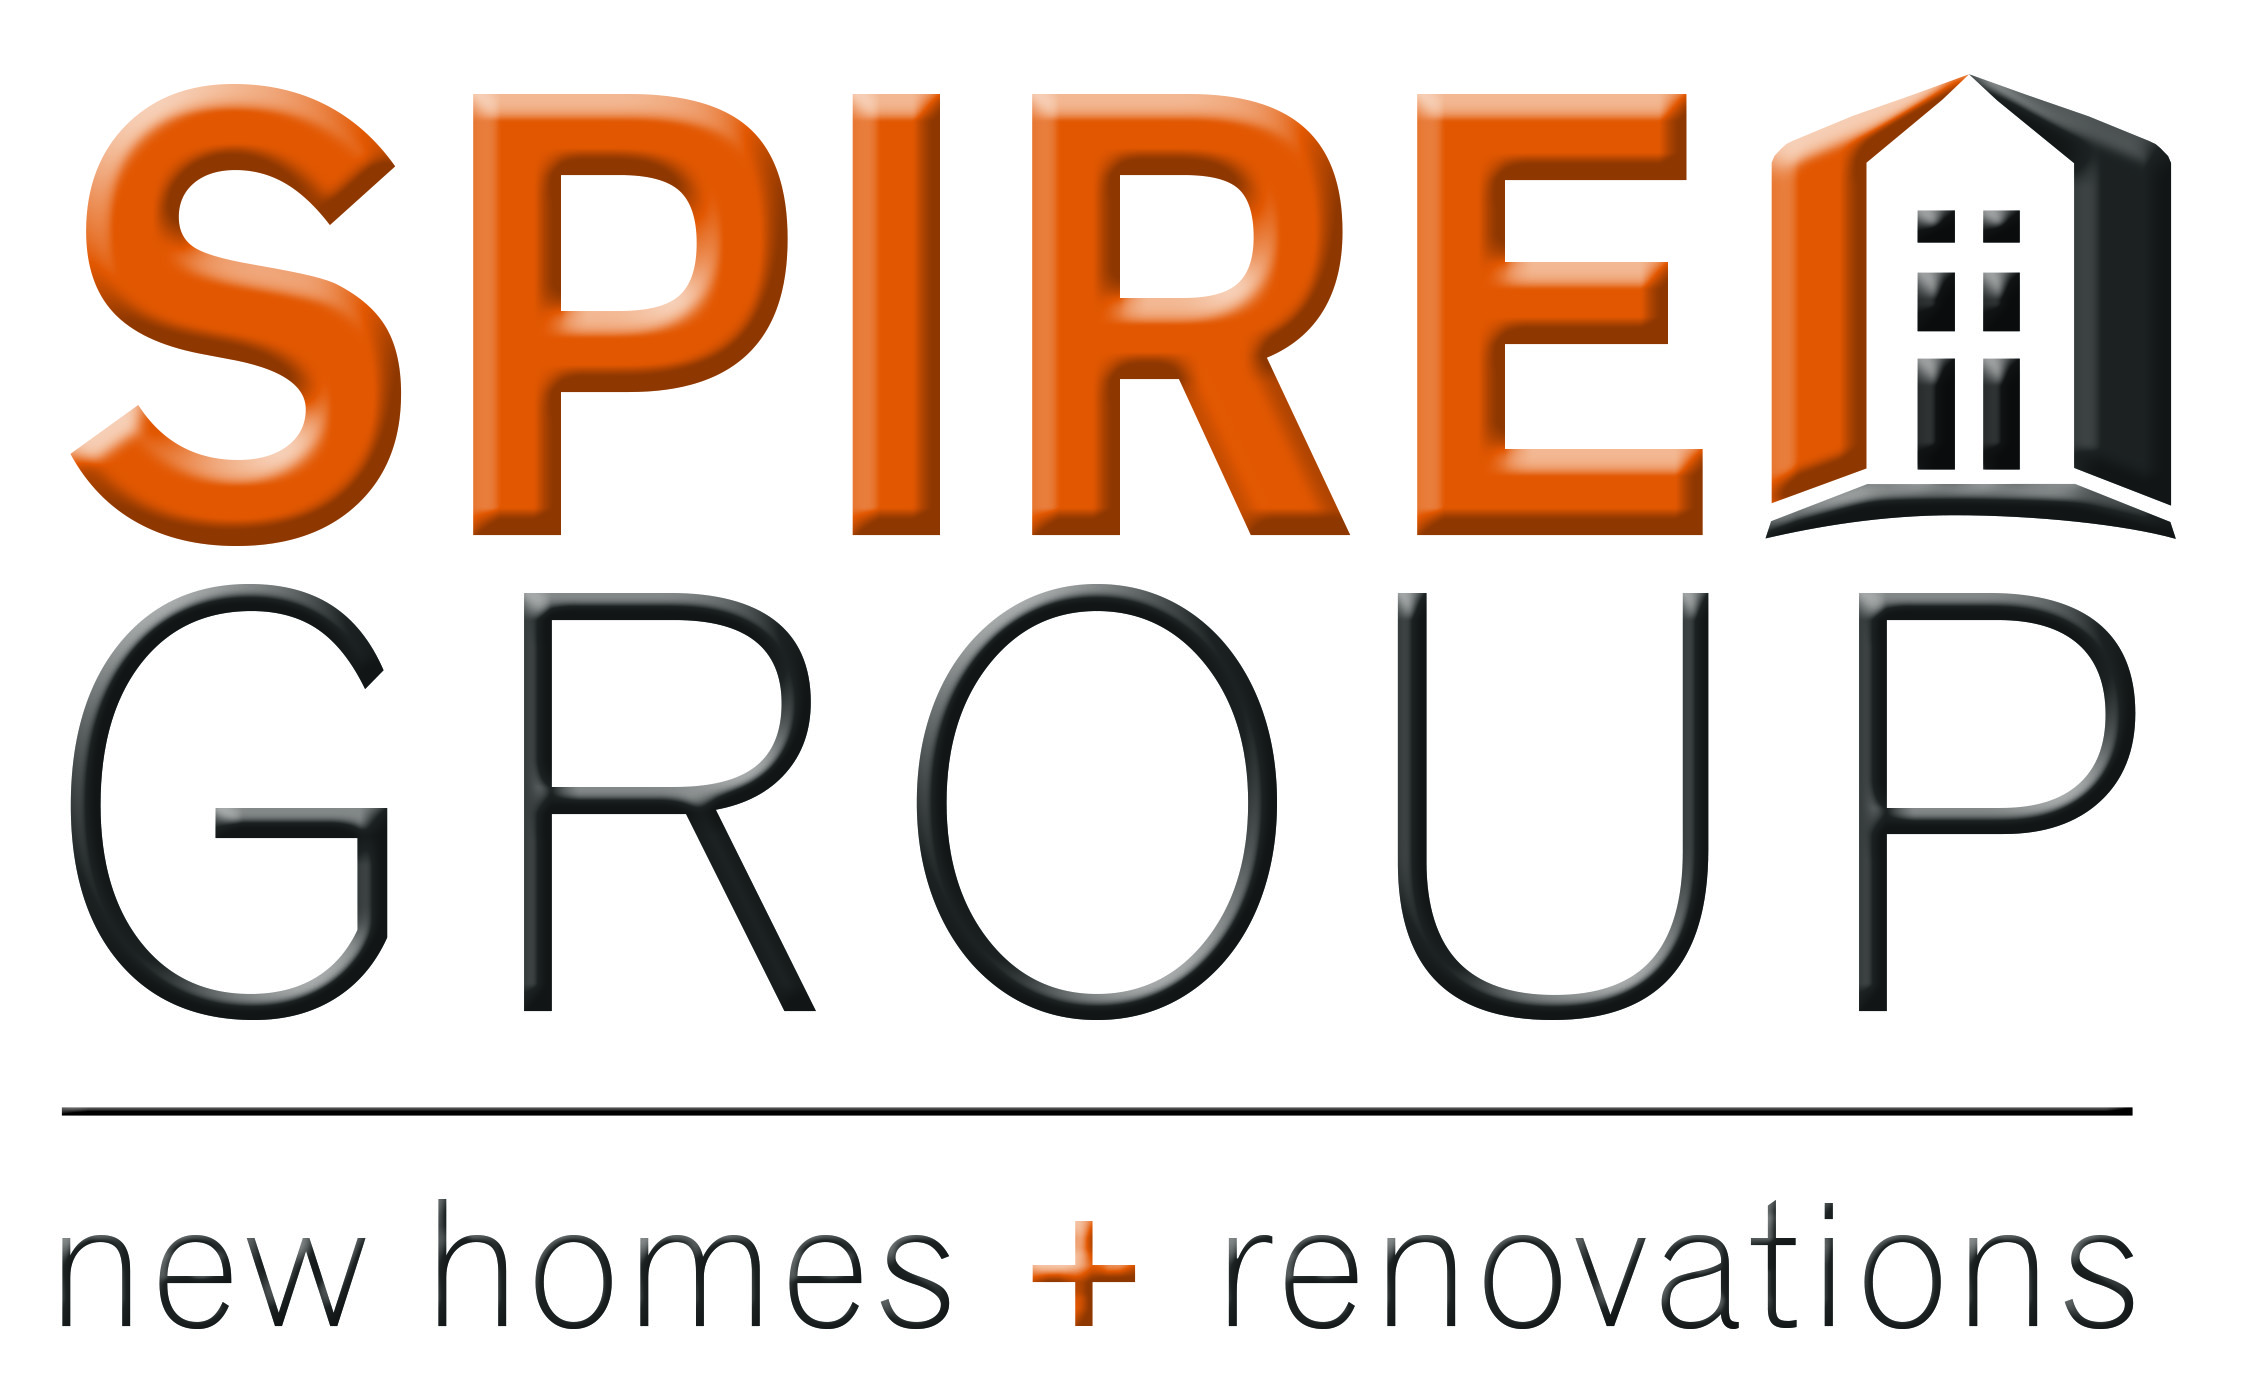 Spire Group | Residential Construction and Renovations